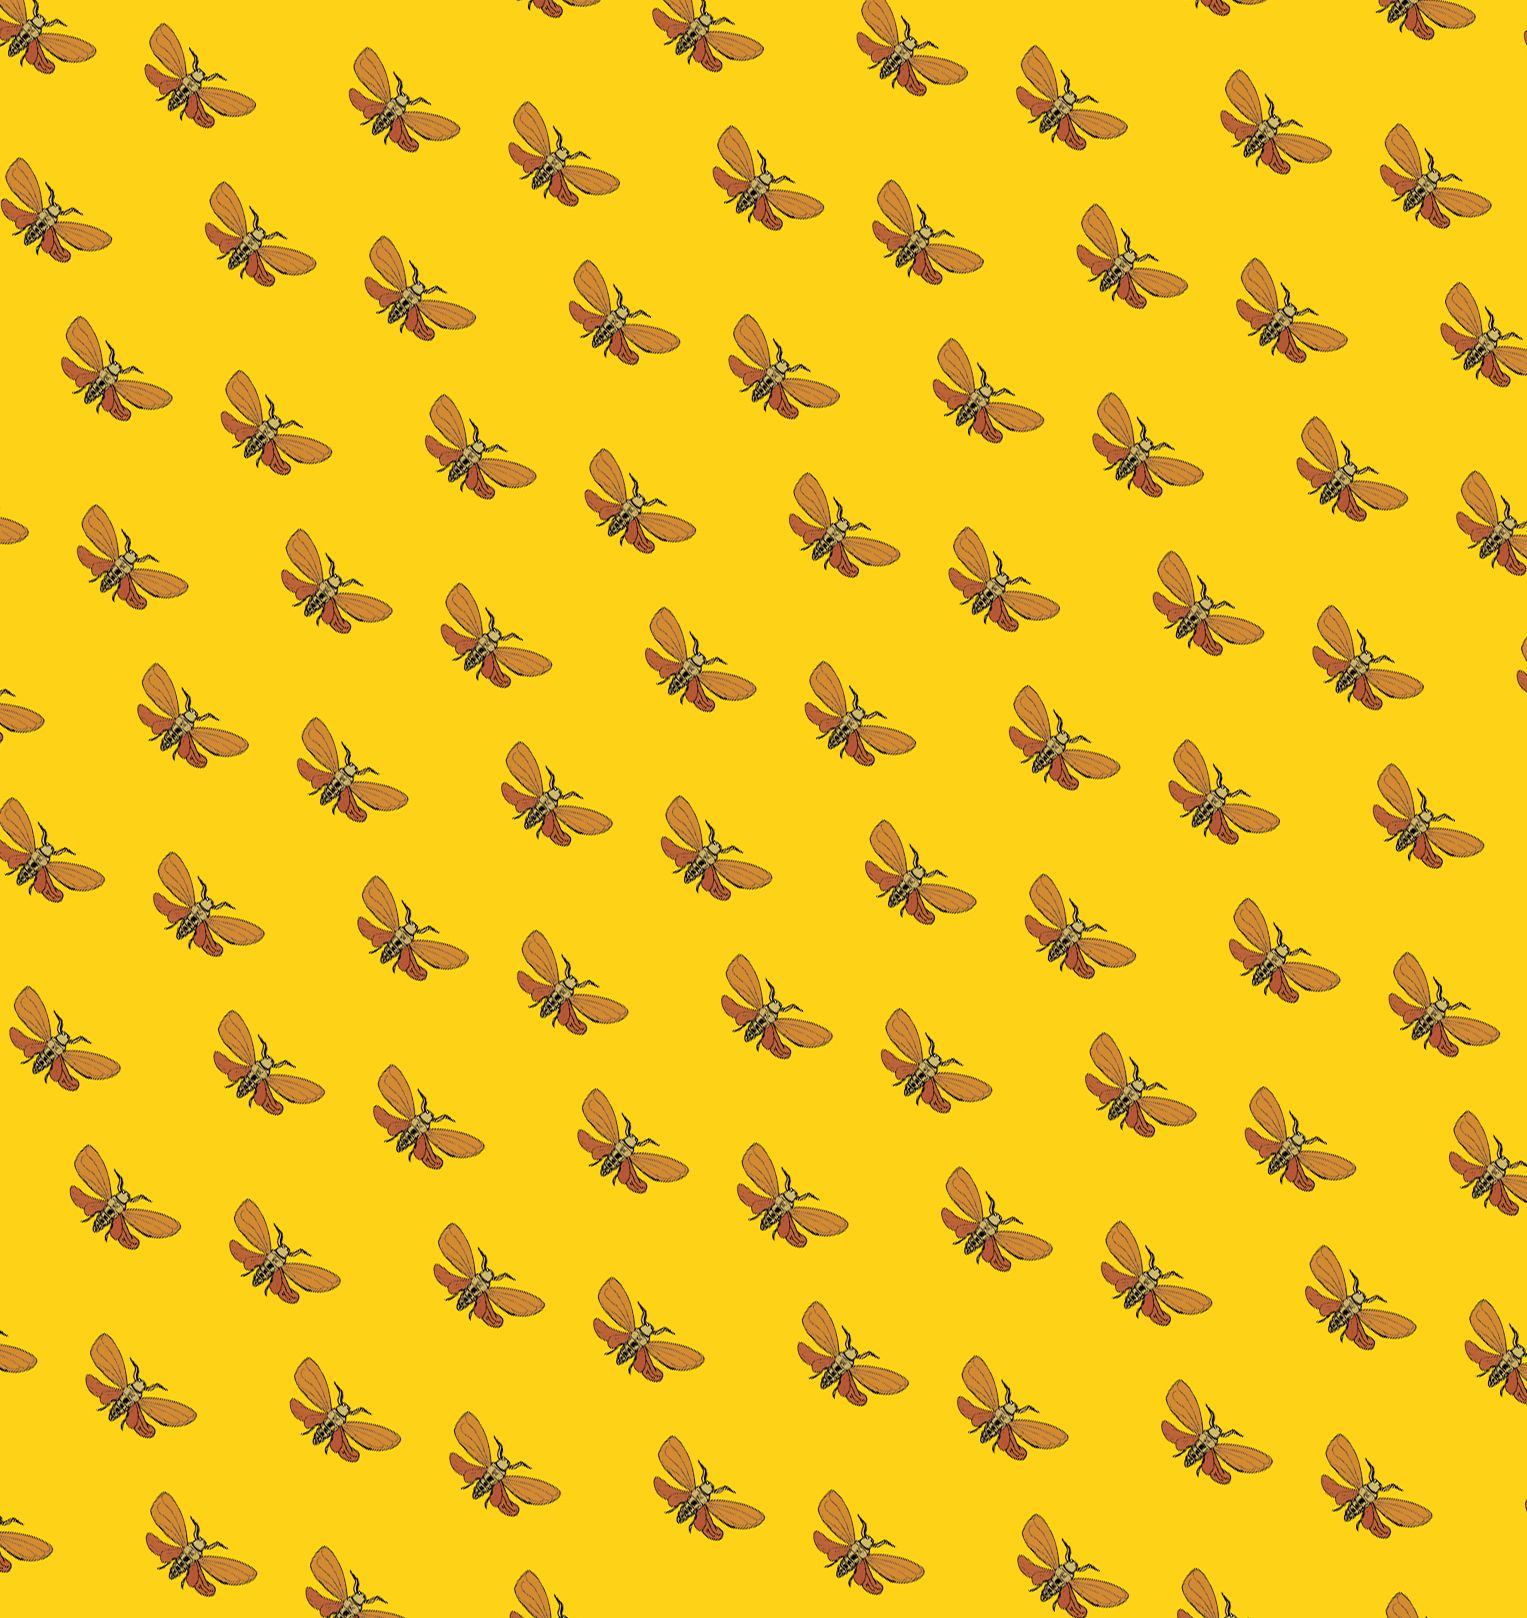 Secterns (Moth on Yellow) - feel free to ask for the high res. I'd suggest use them as gift wrappers :)